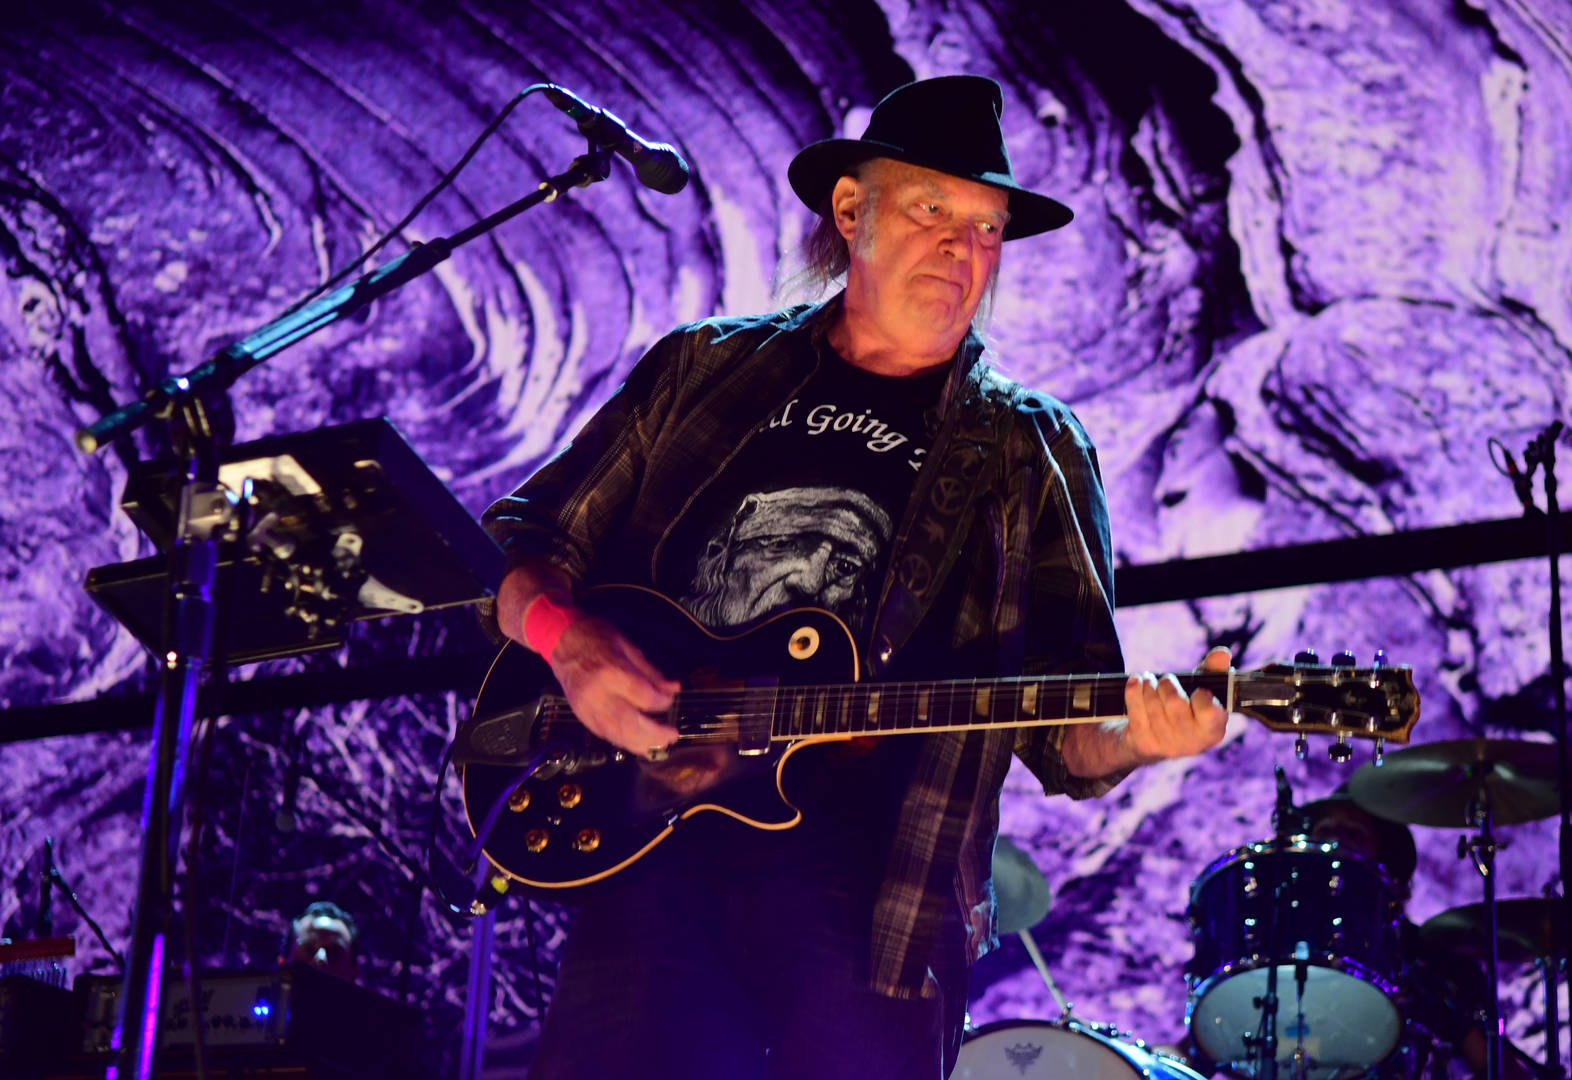 Neil Young Says US Citizenship Delayed For Past Marijuana Use